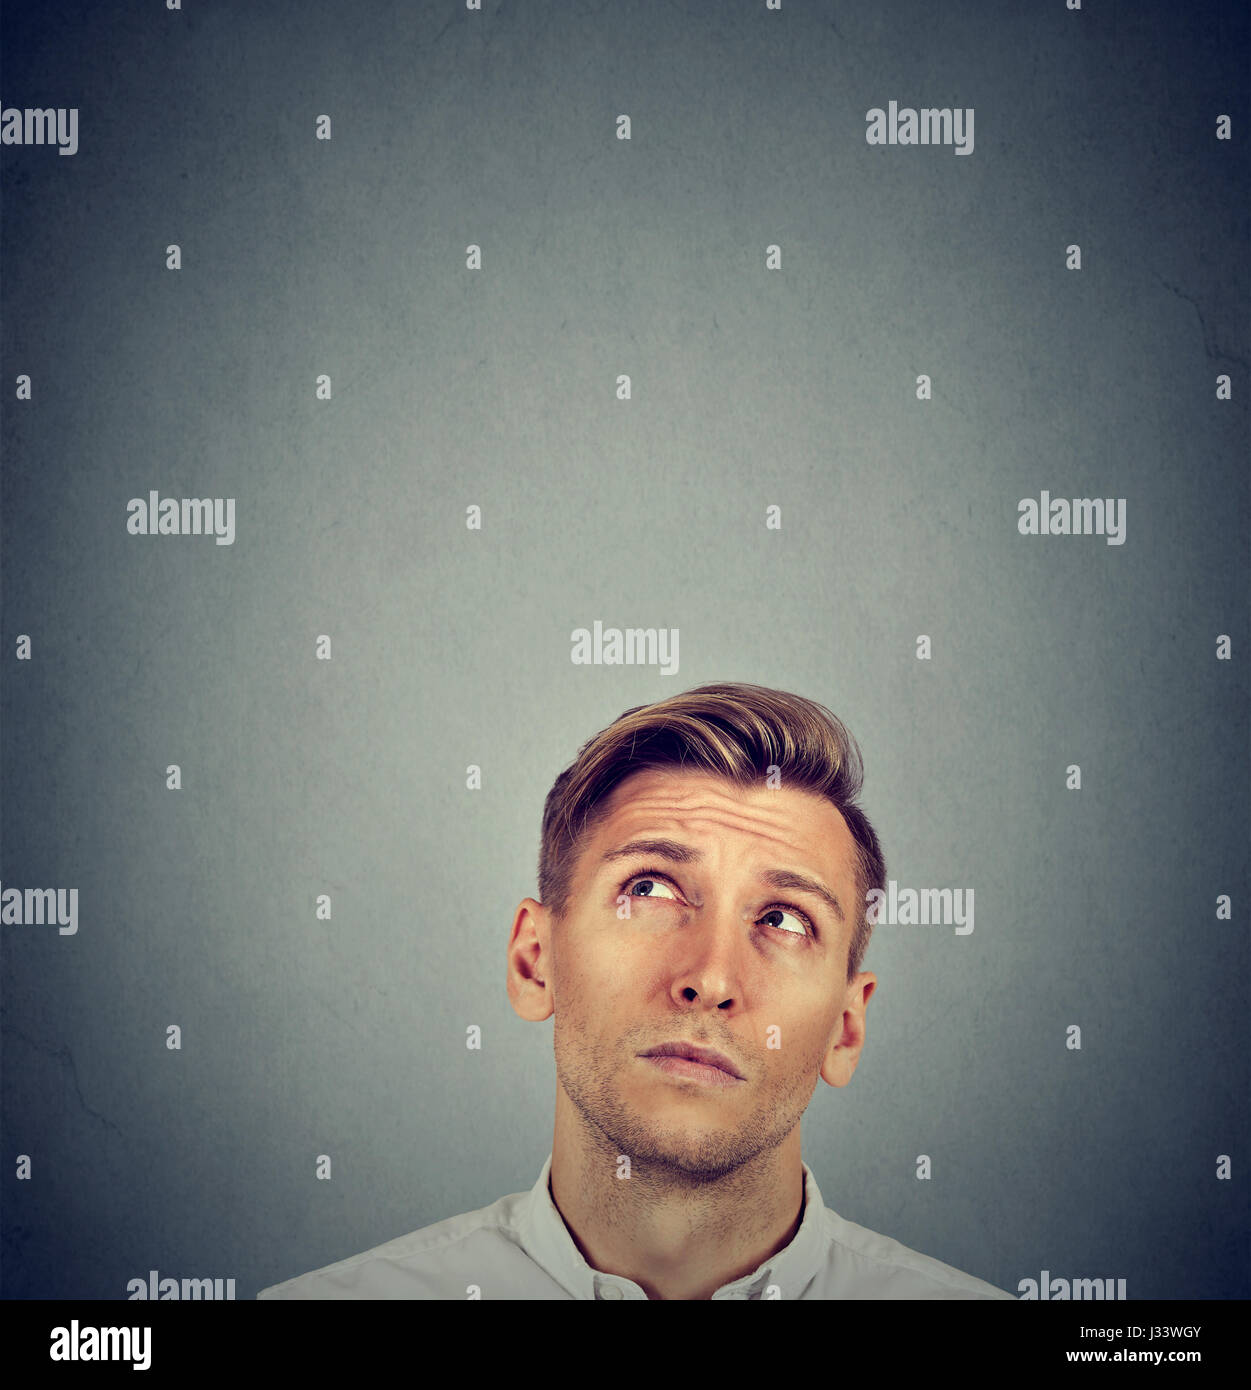 Headshot confused man thinking looking up isolated on gray wall background with copy space above head. Human face - Stock Image